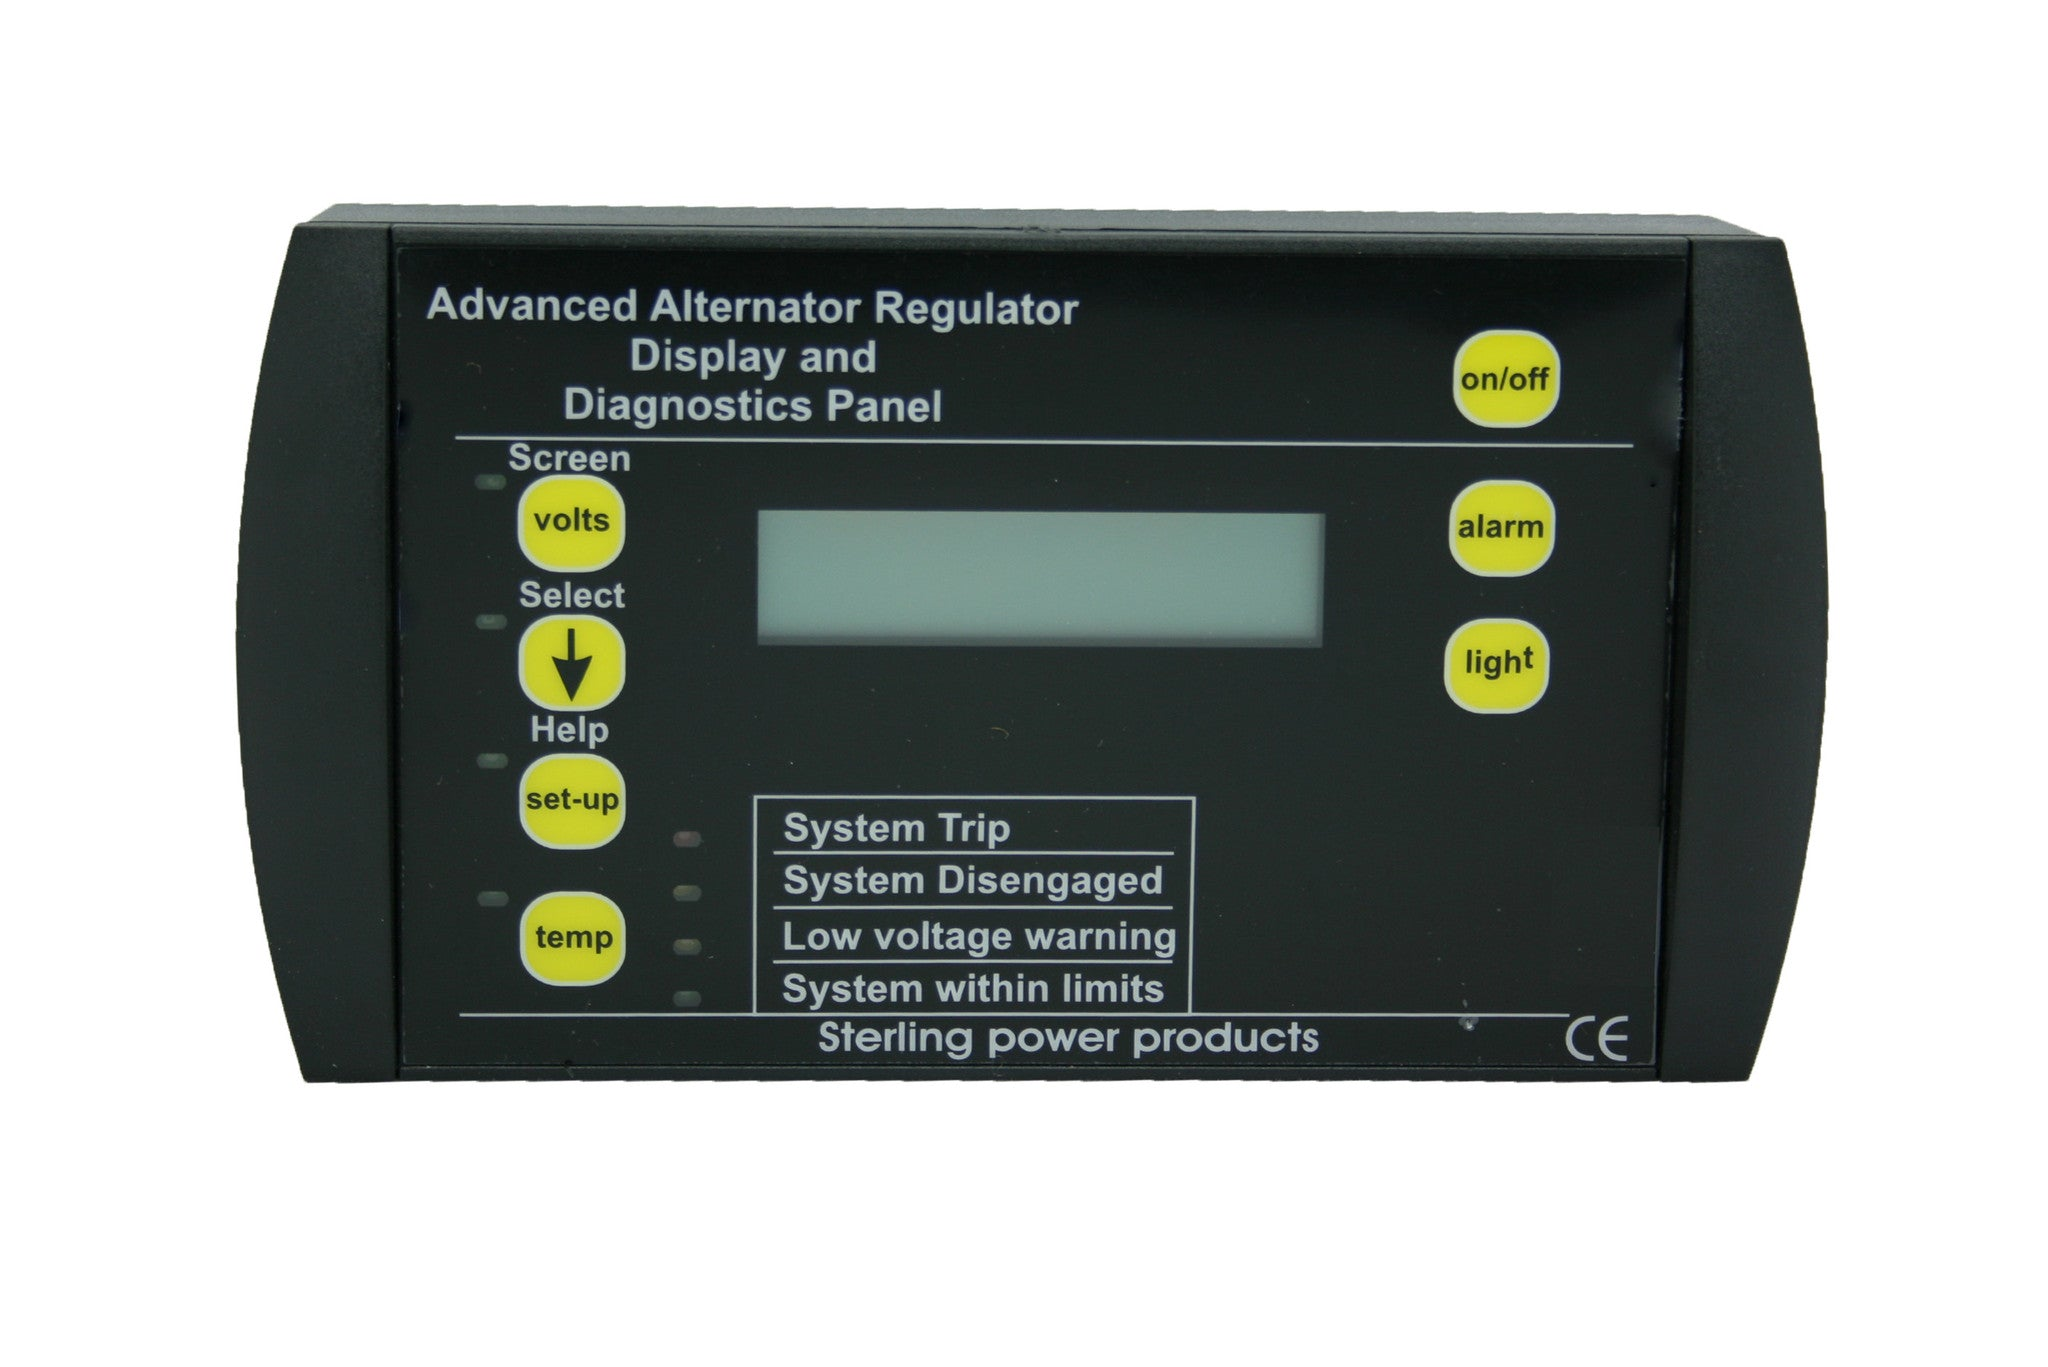 Universal Advanced Digital Alternator Regulator Pro Reg D (PDAR)